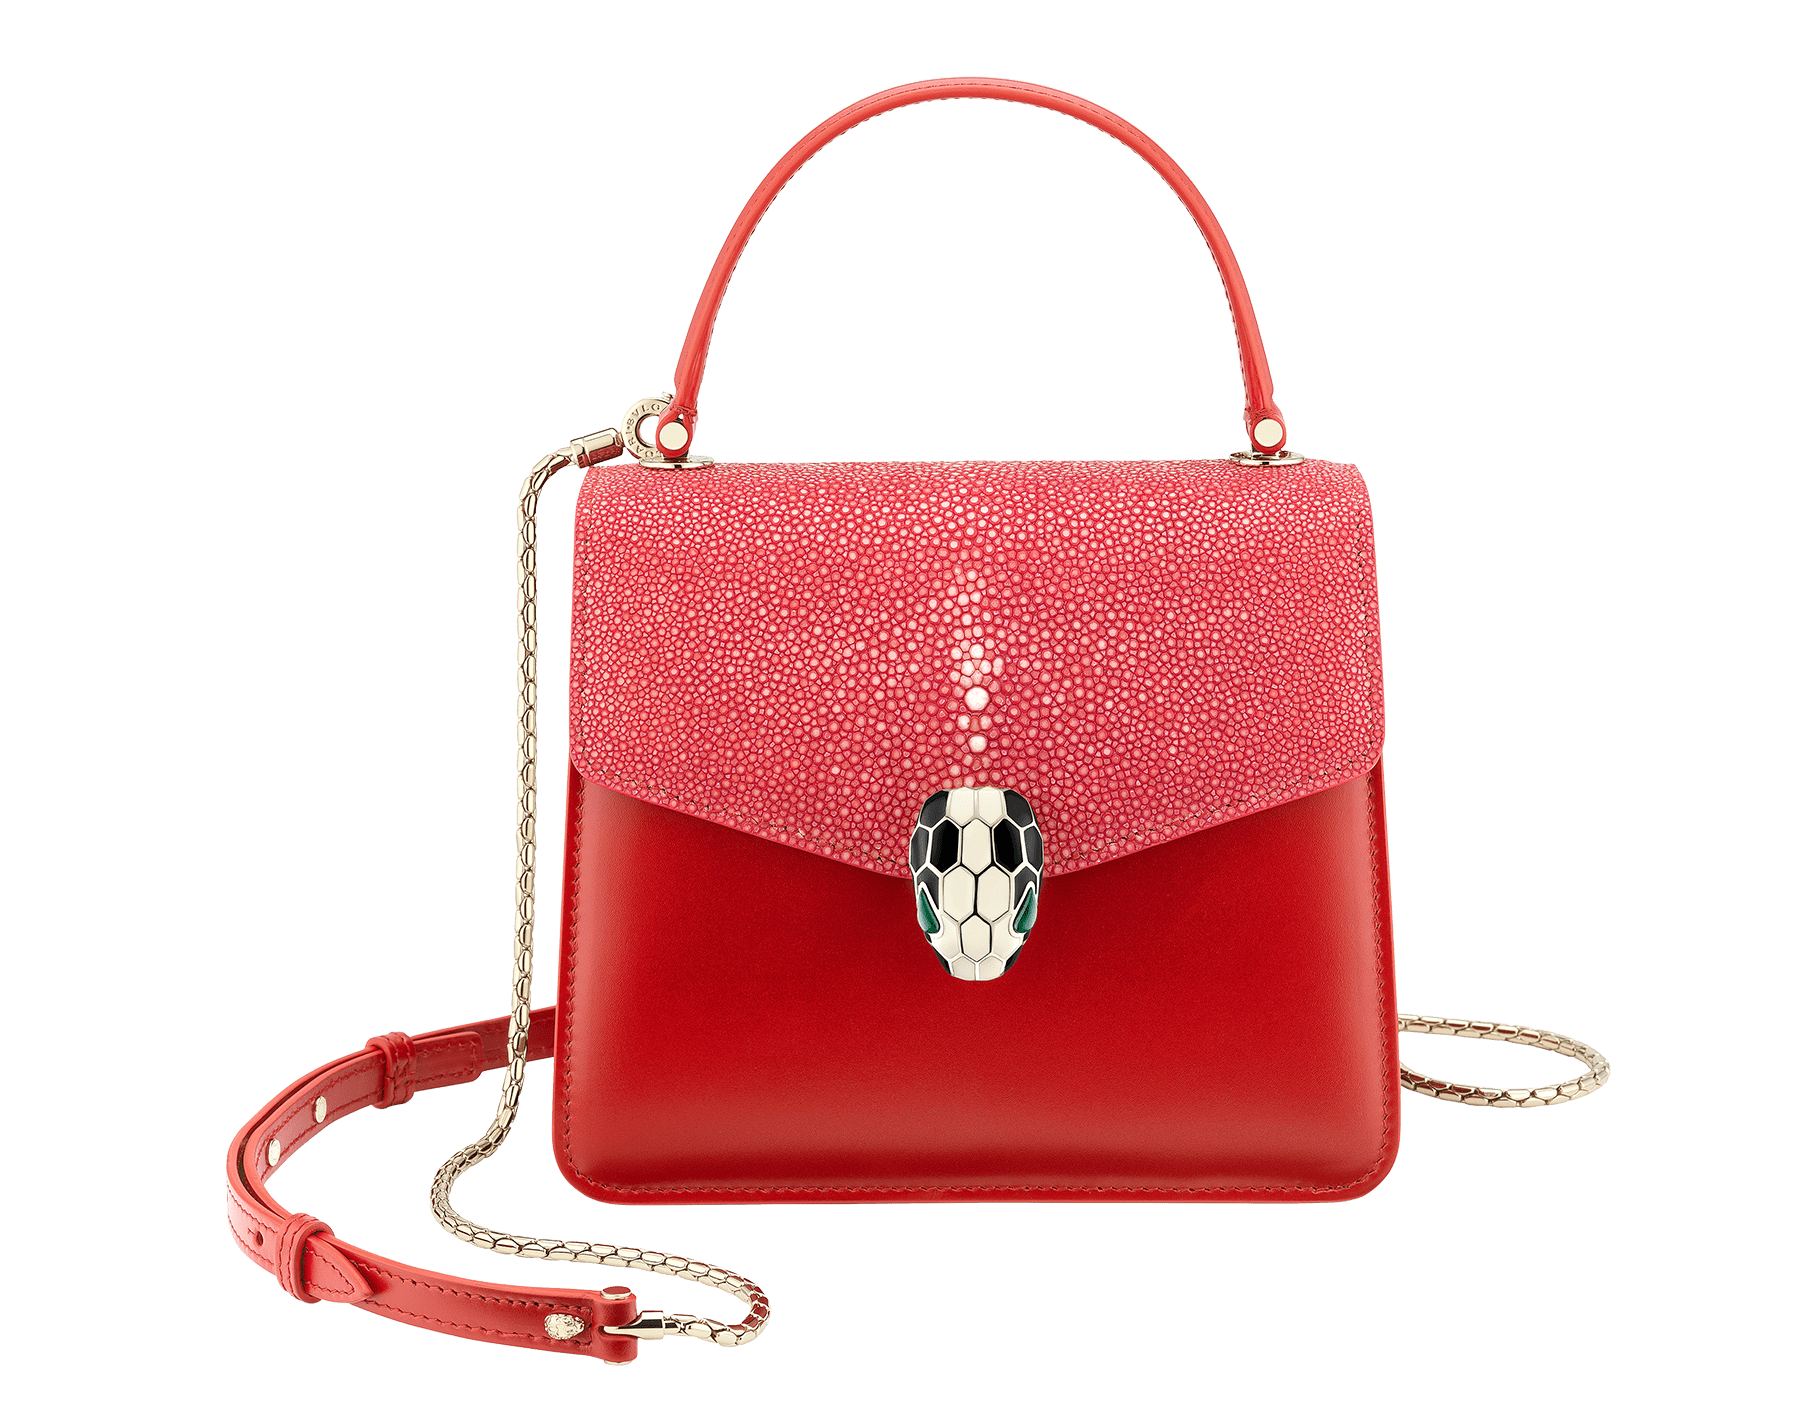 """Serpenti Forever "" crossbody bag in carmine jasper galuchat skin and calf leather. Iconic snakehead closure in light gold plated brass enriched with black and white enamel and green malachite eyes 752-Gb image 1"